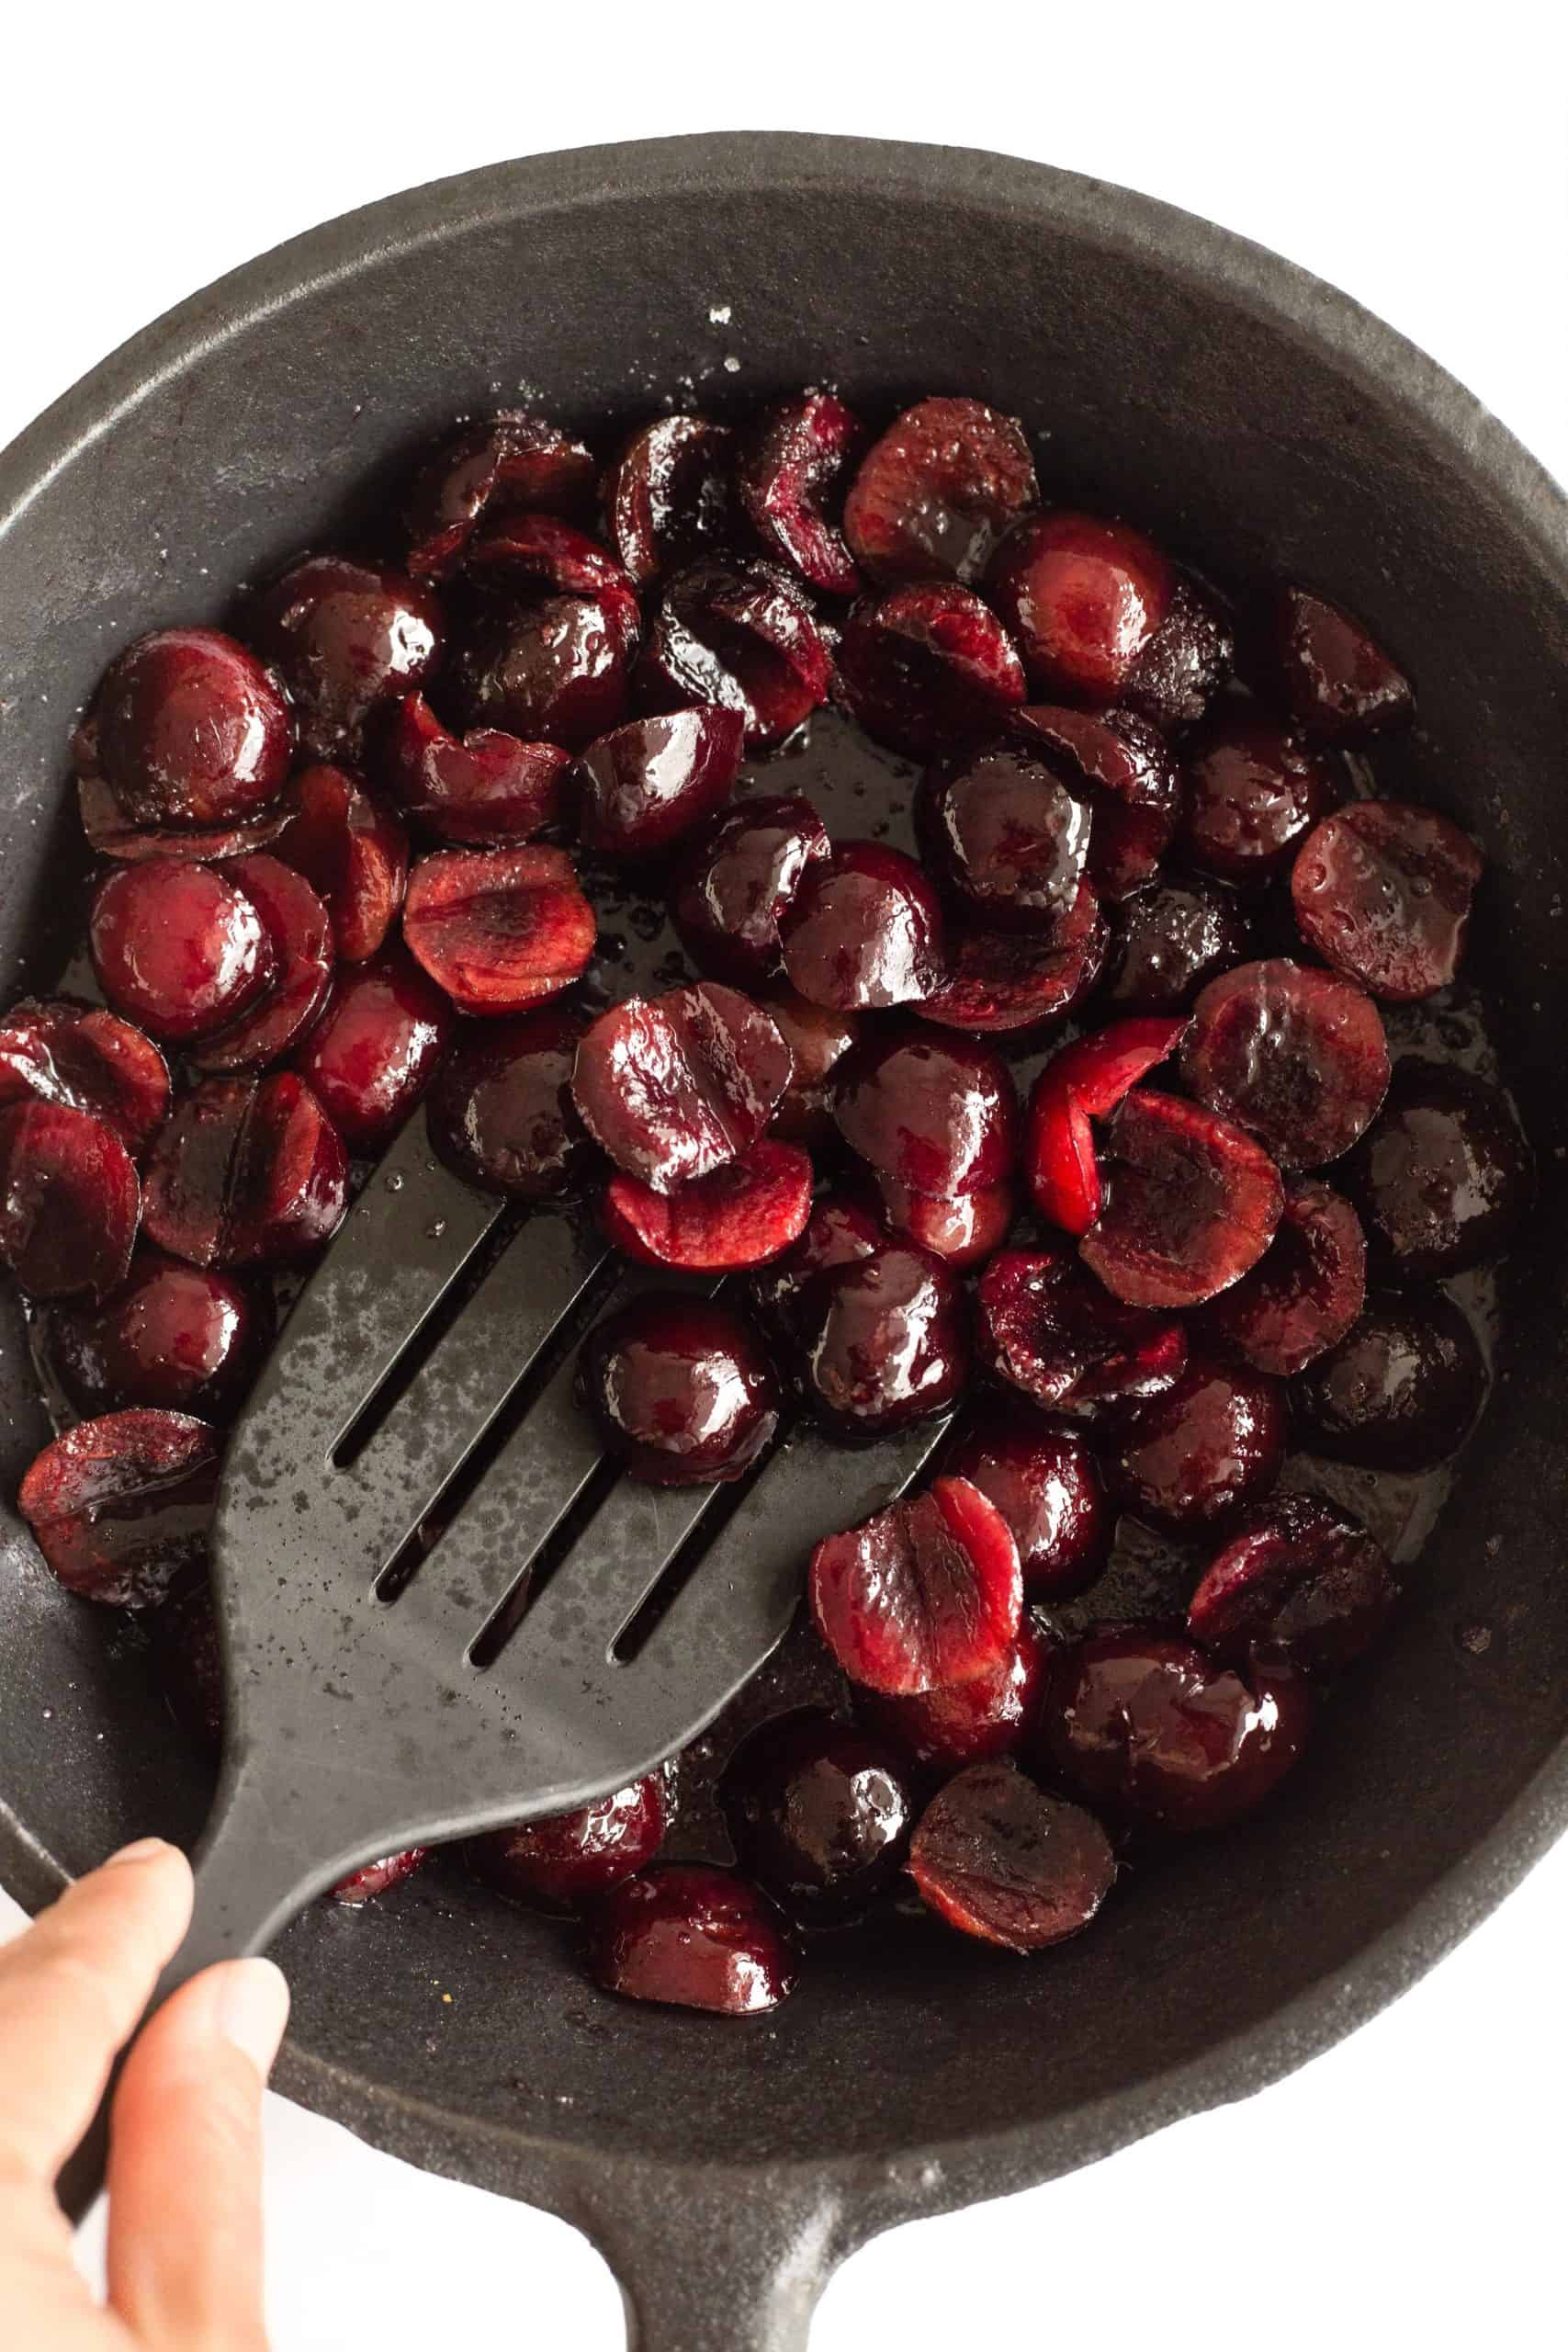 Cooking halved cherries in a cast iron skillet.